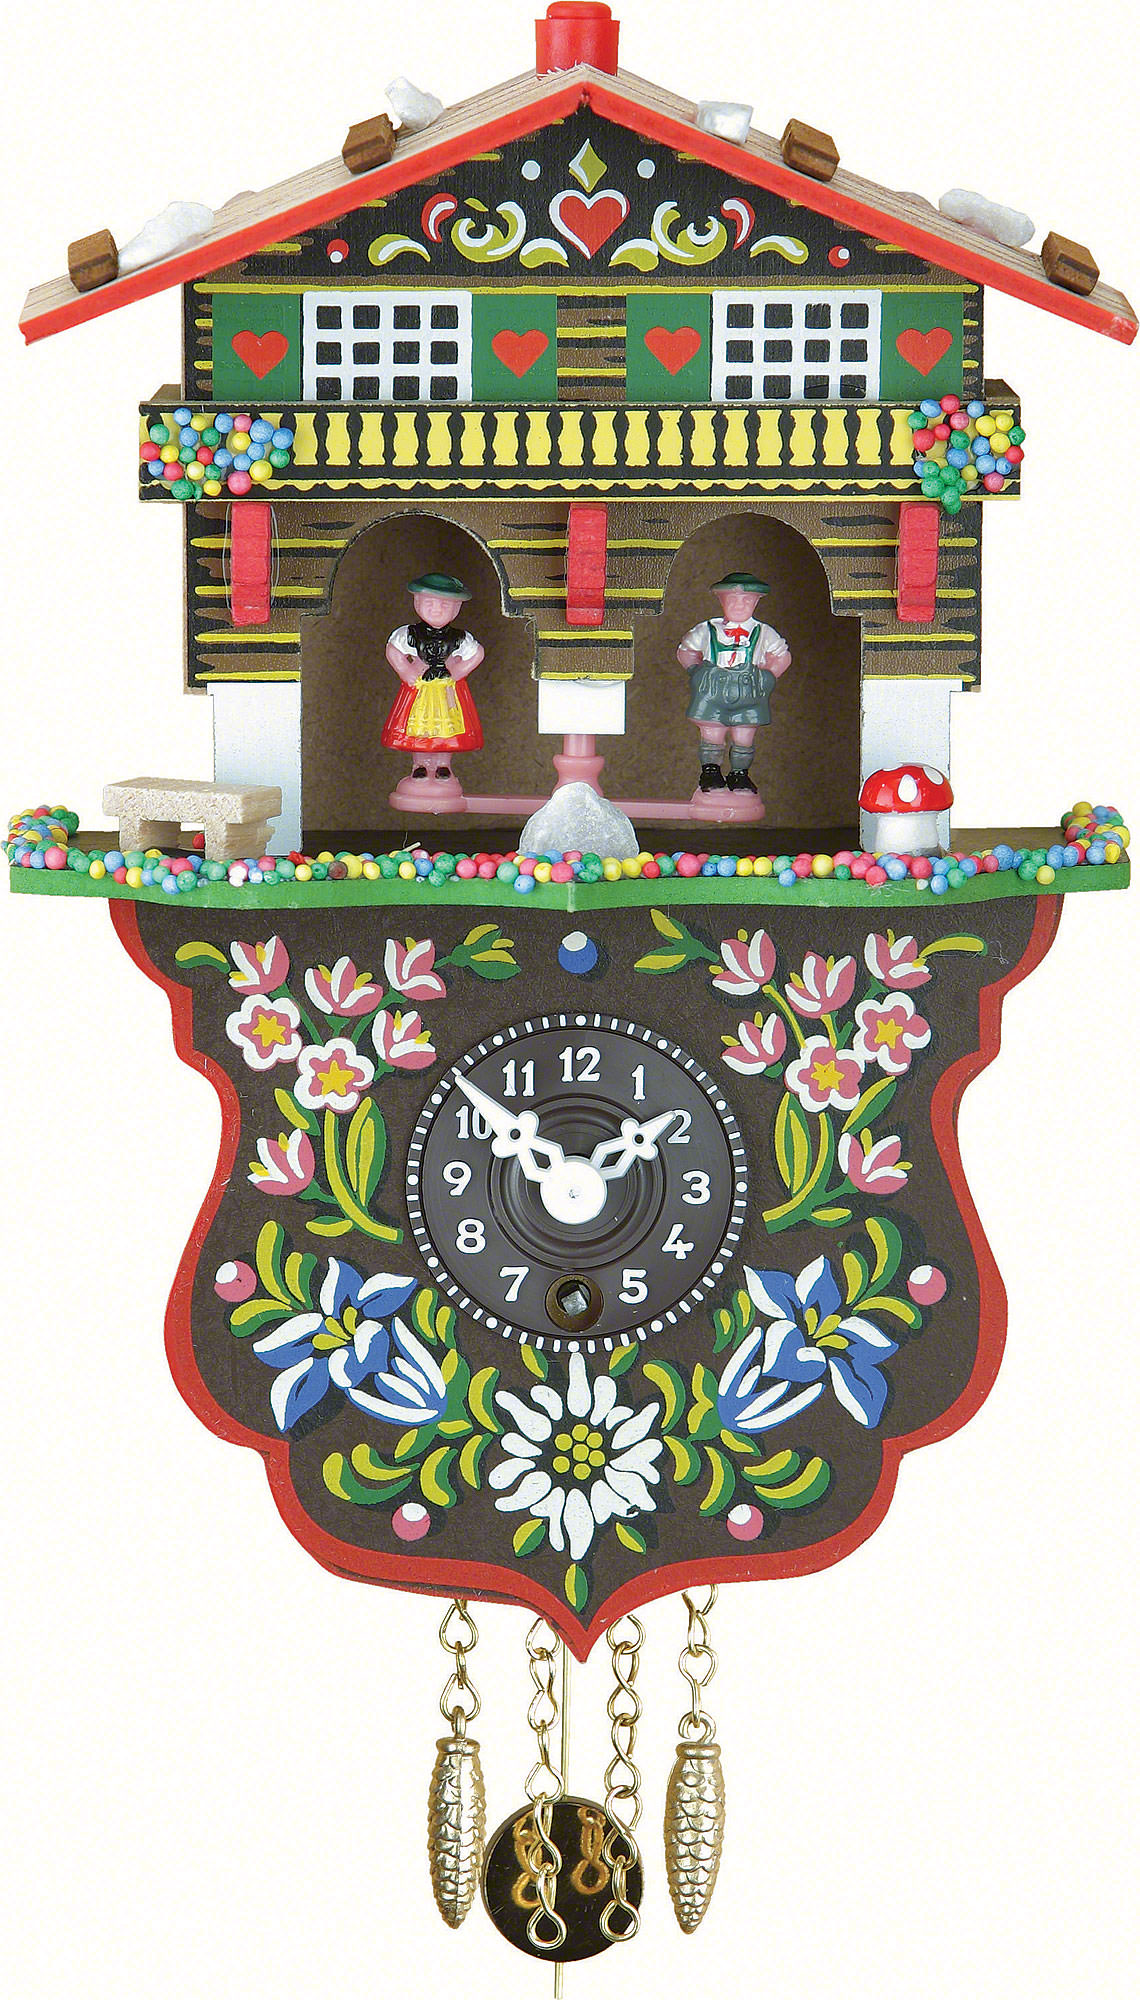 Cuckoo clock 1 day spring movement black forest pendulum clock style 19cm by trenkle uhren 808 p - Cuckoo clock pendulum ...